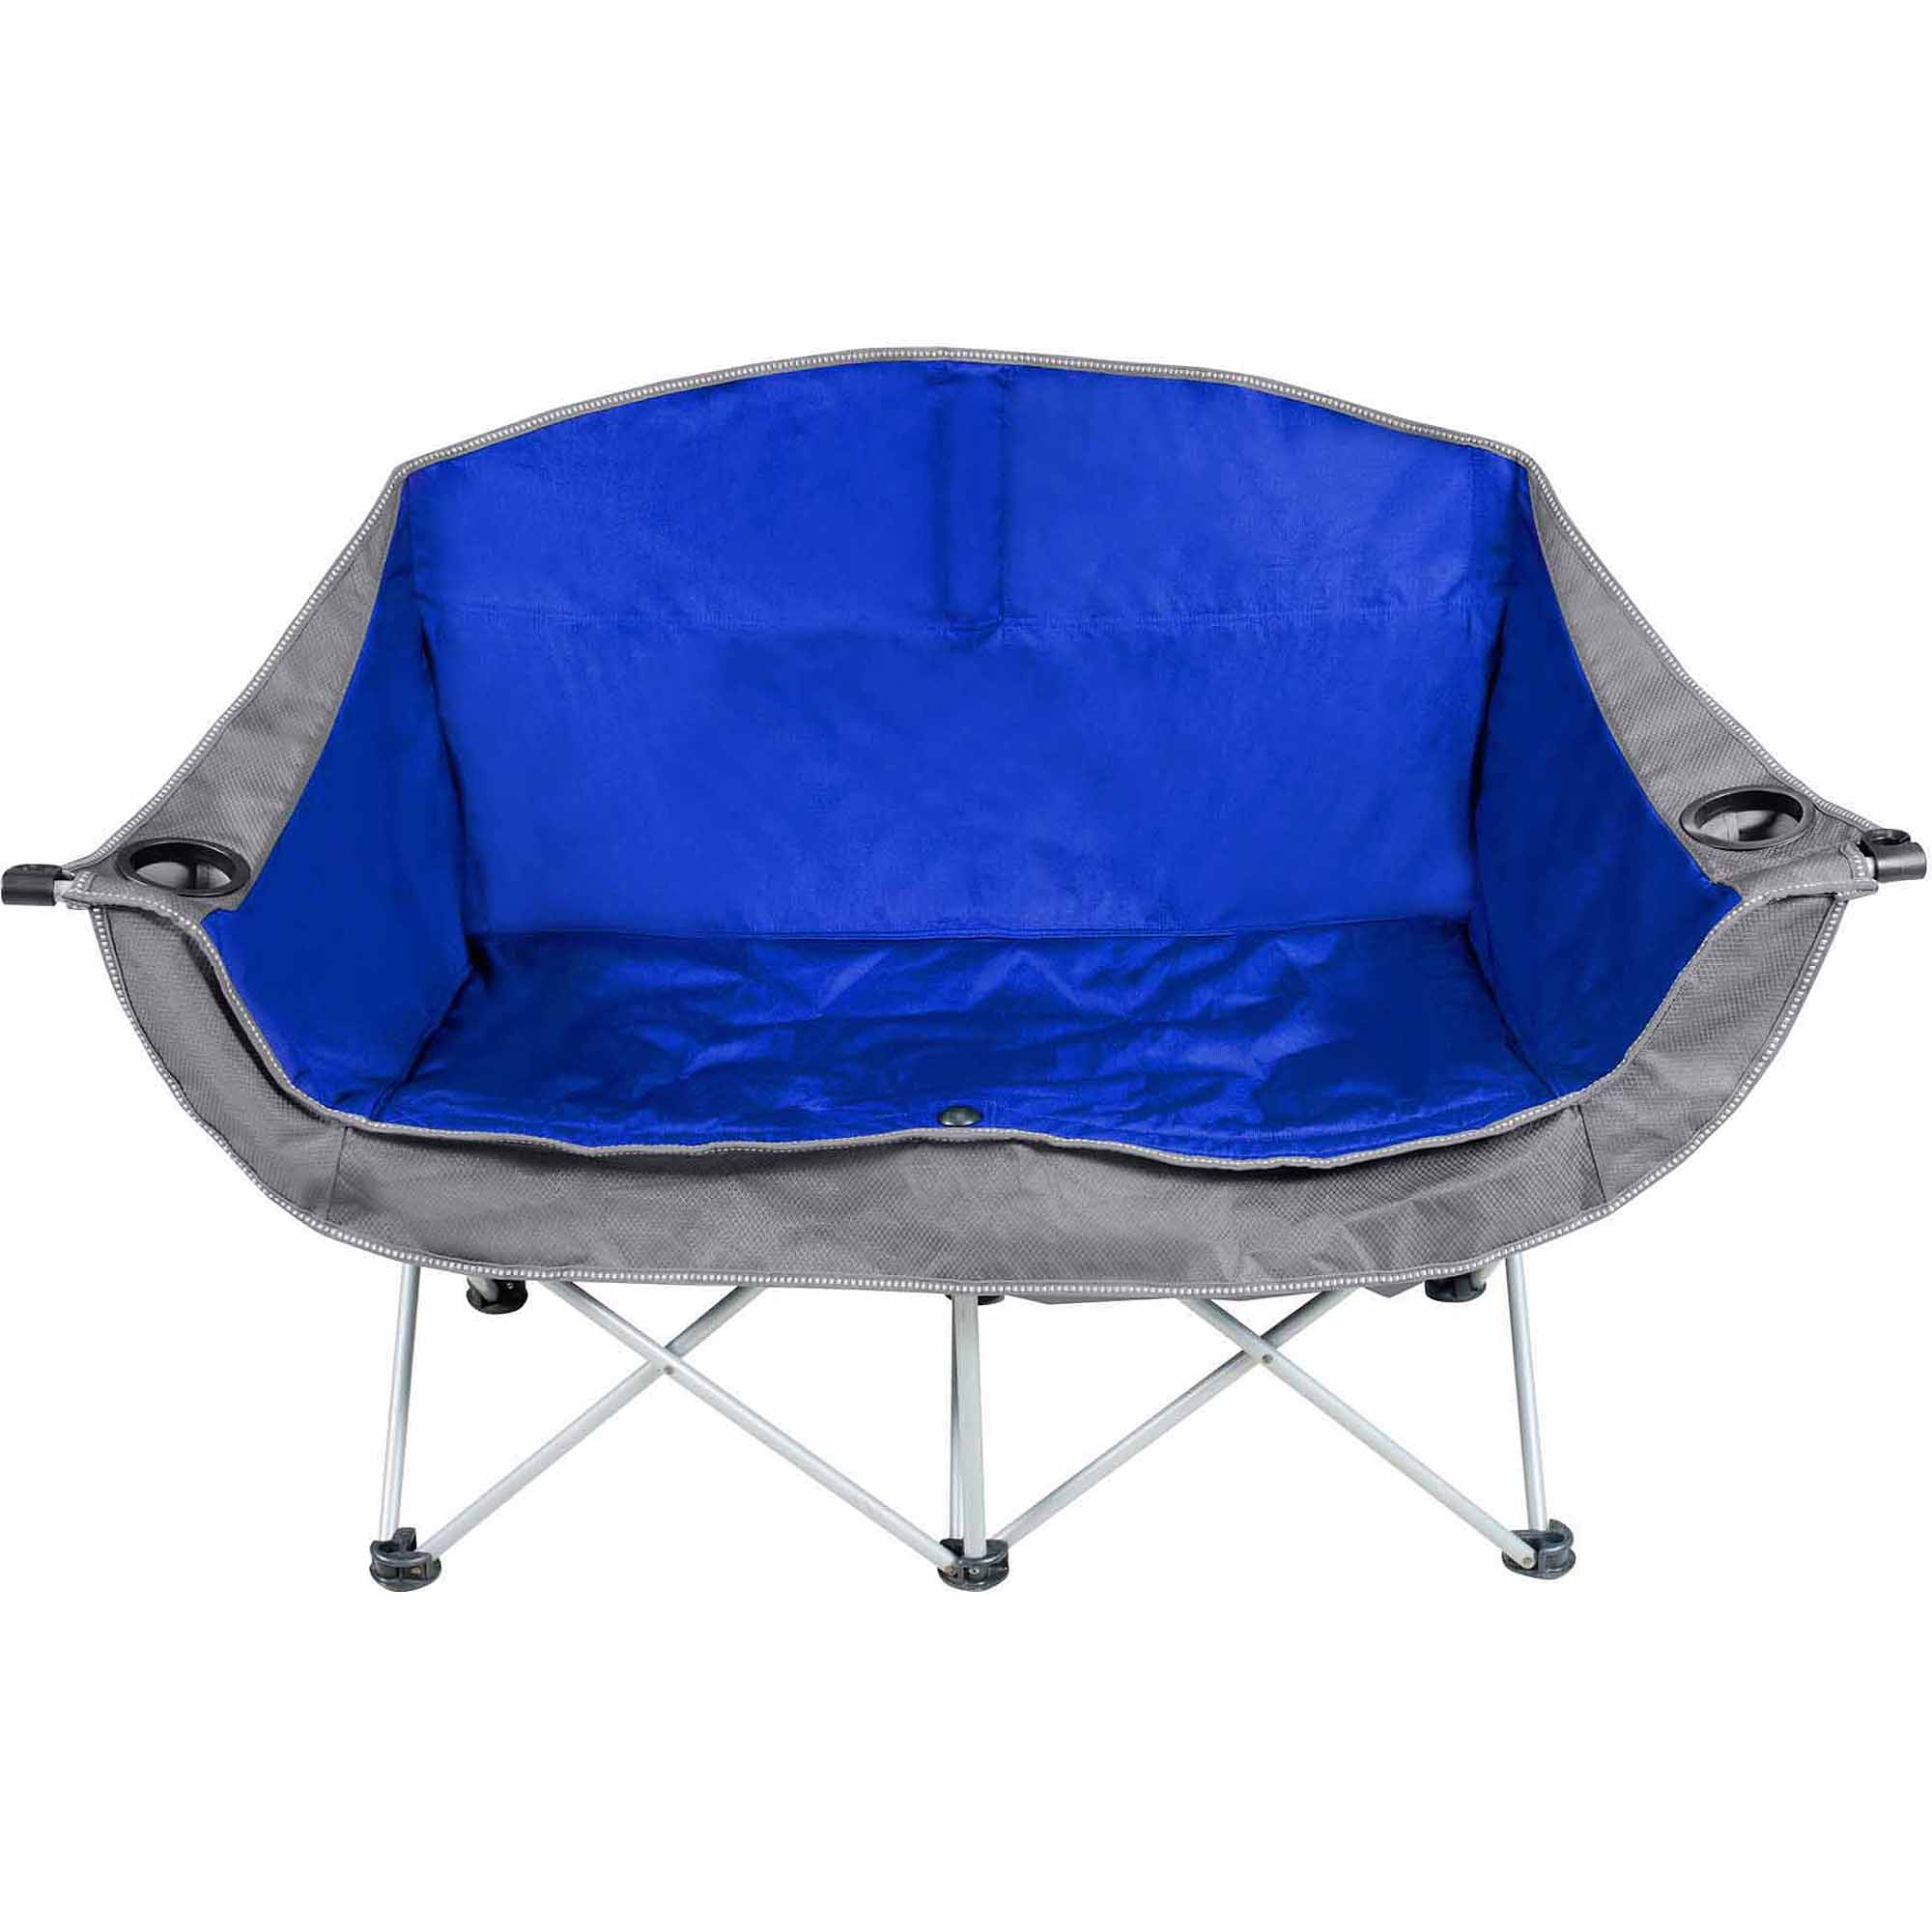 Ozark Trail 2-Person Camping Love Seat